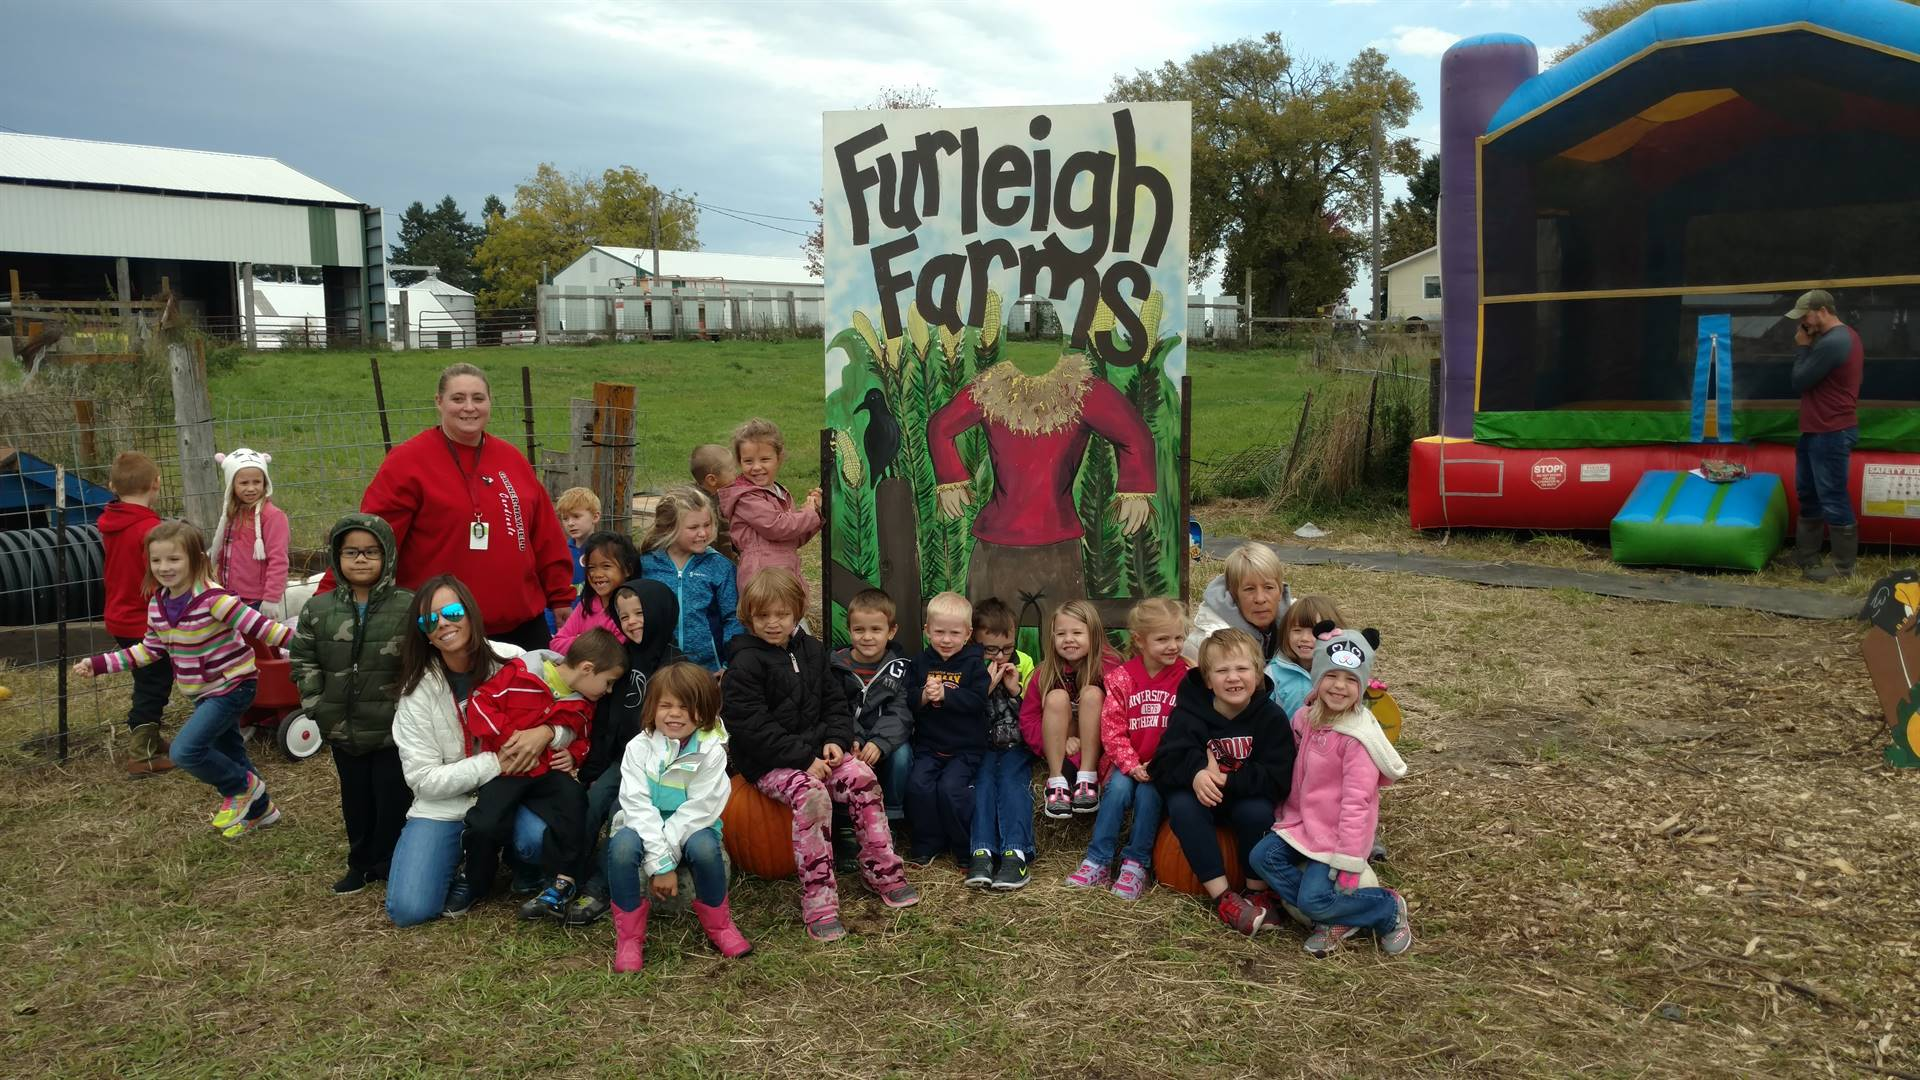 Students sitting near a Furleigh Farms Scarecrow Sign